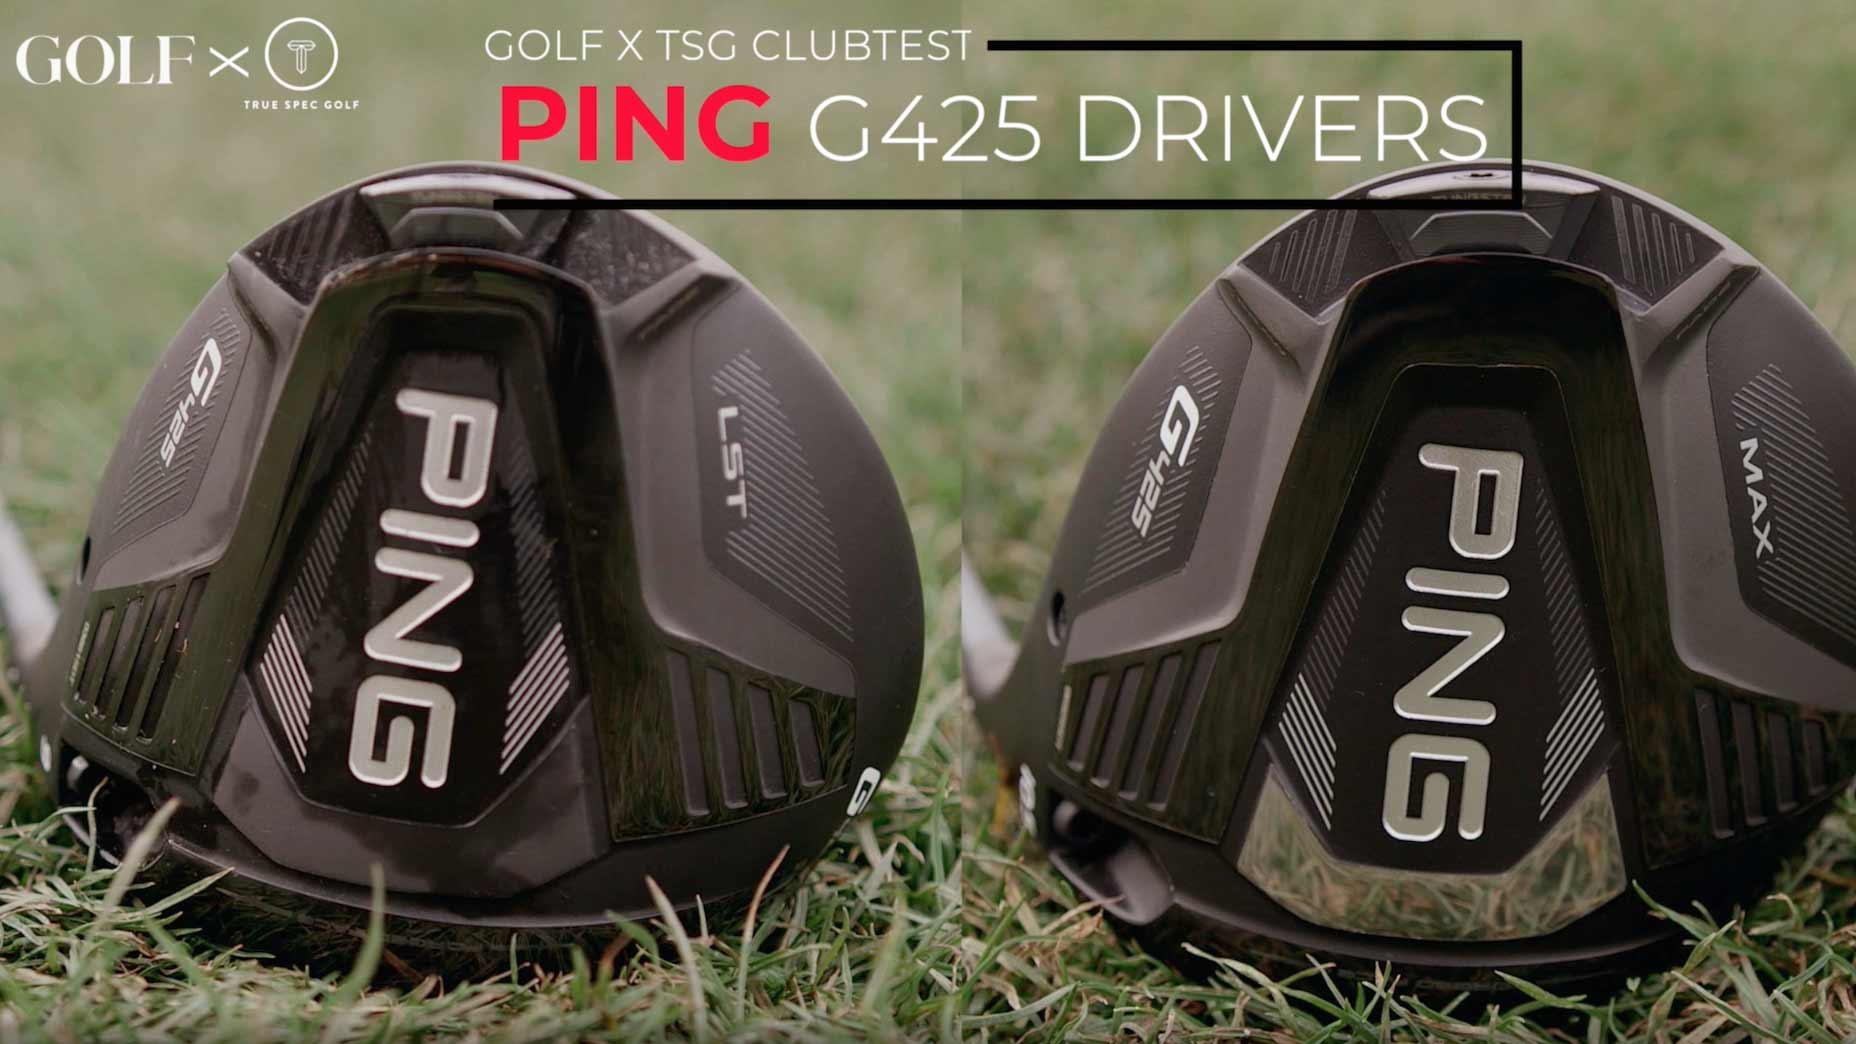 Ping G425 drivers